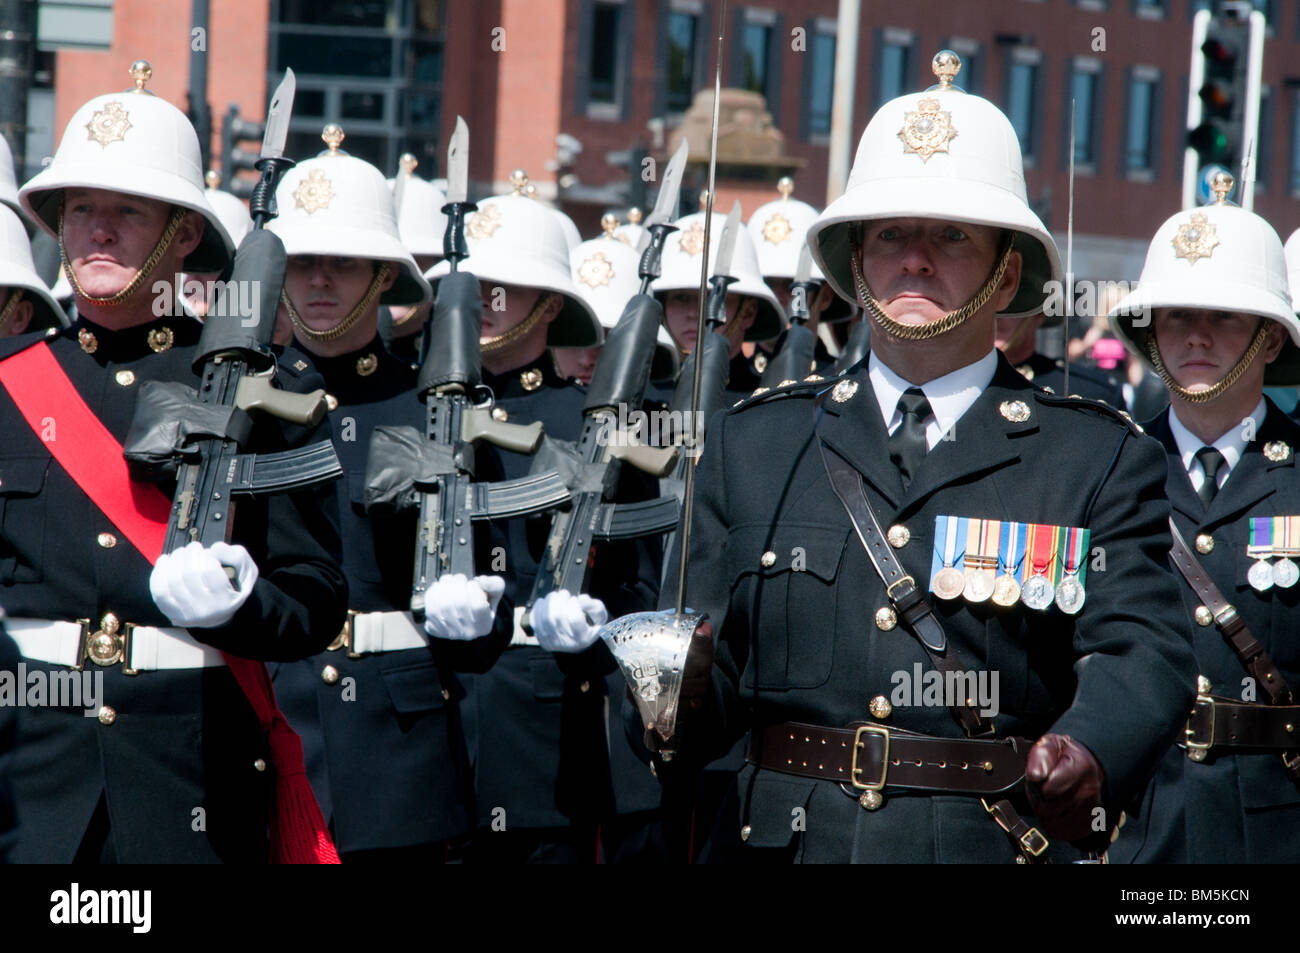 f46b1bdc36fa9 Royal Marine Commandos Stock Photos   Royal Marine Commandos Stock ...